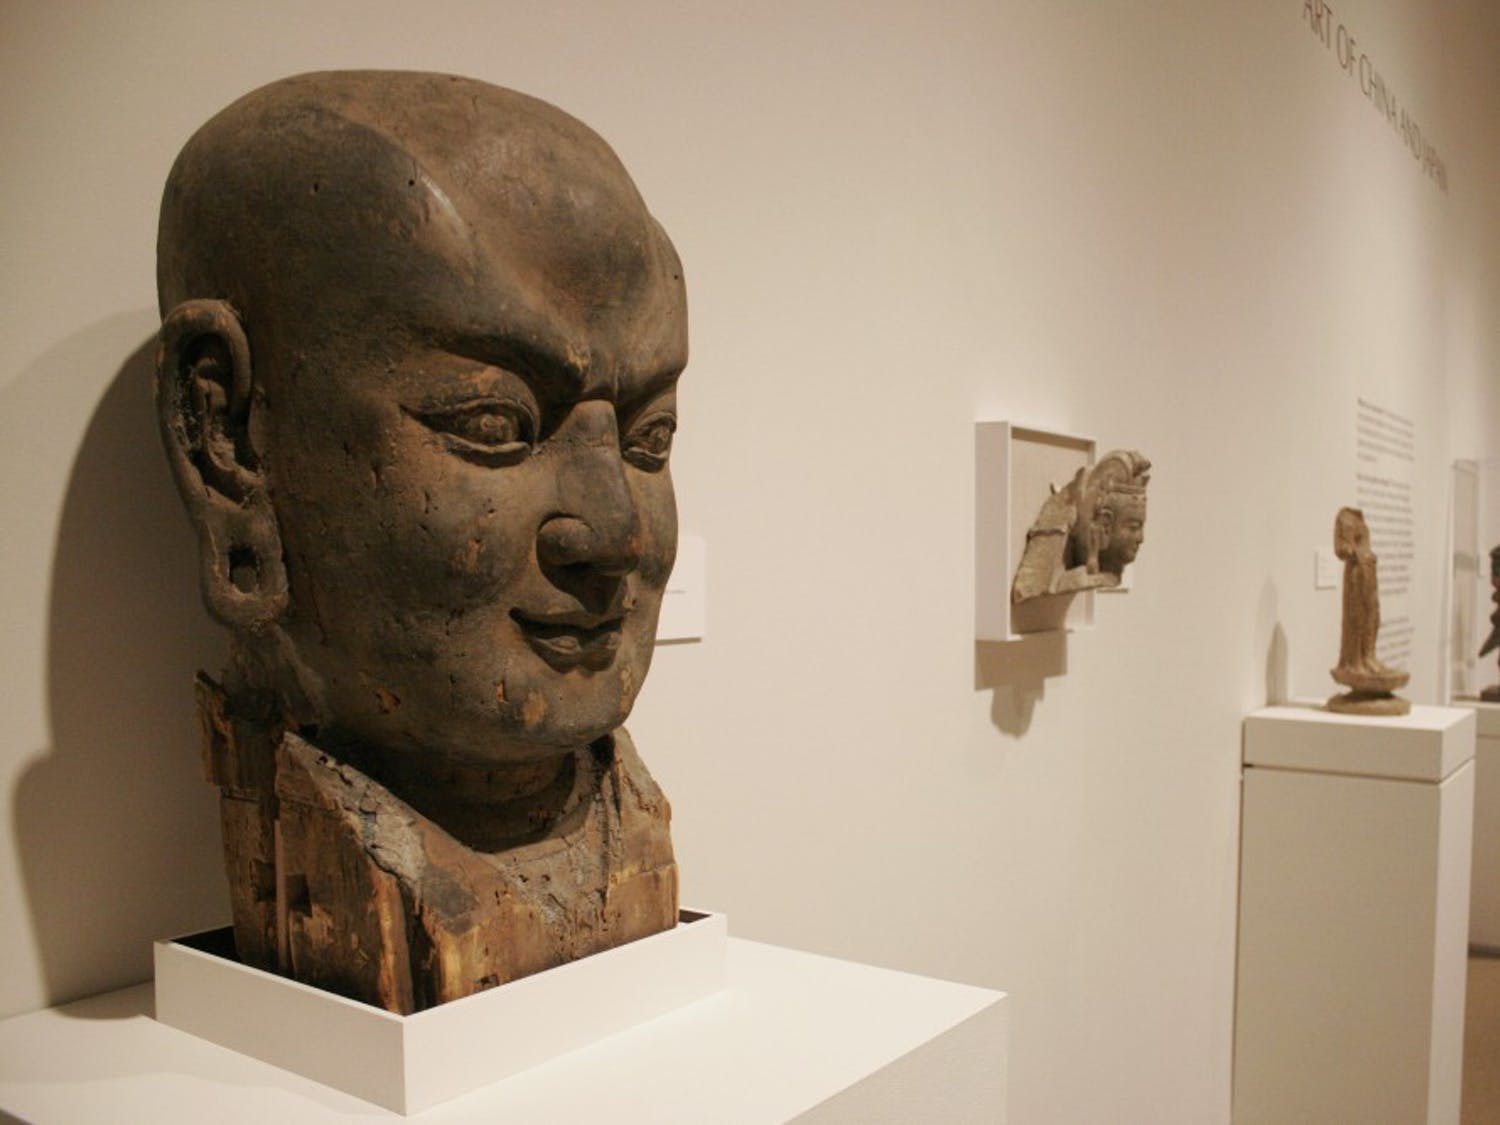 Japanese and Asian art exhibitions are on display at the Ackland.